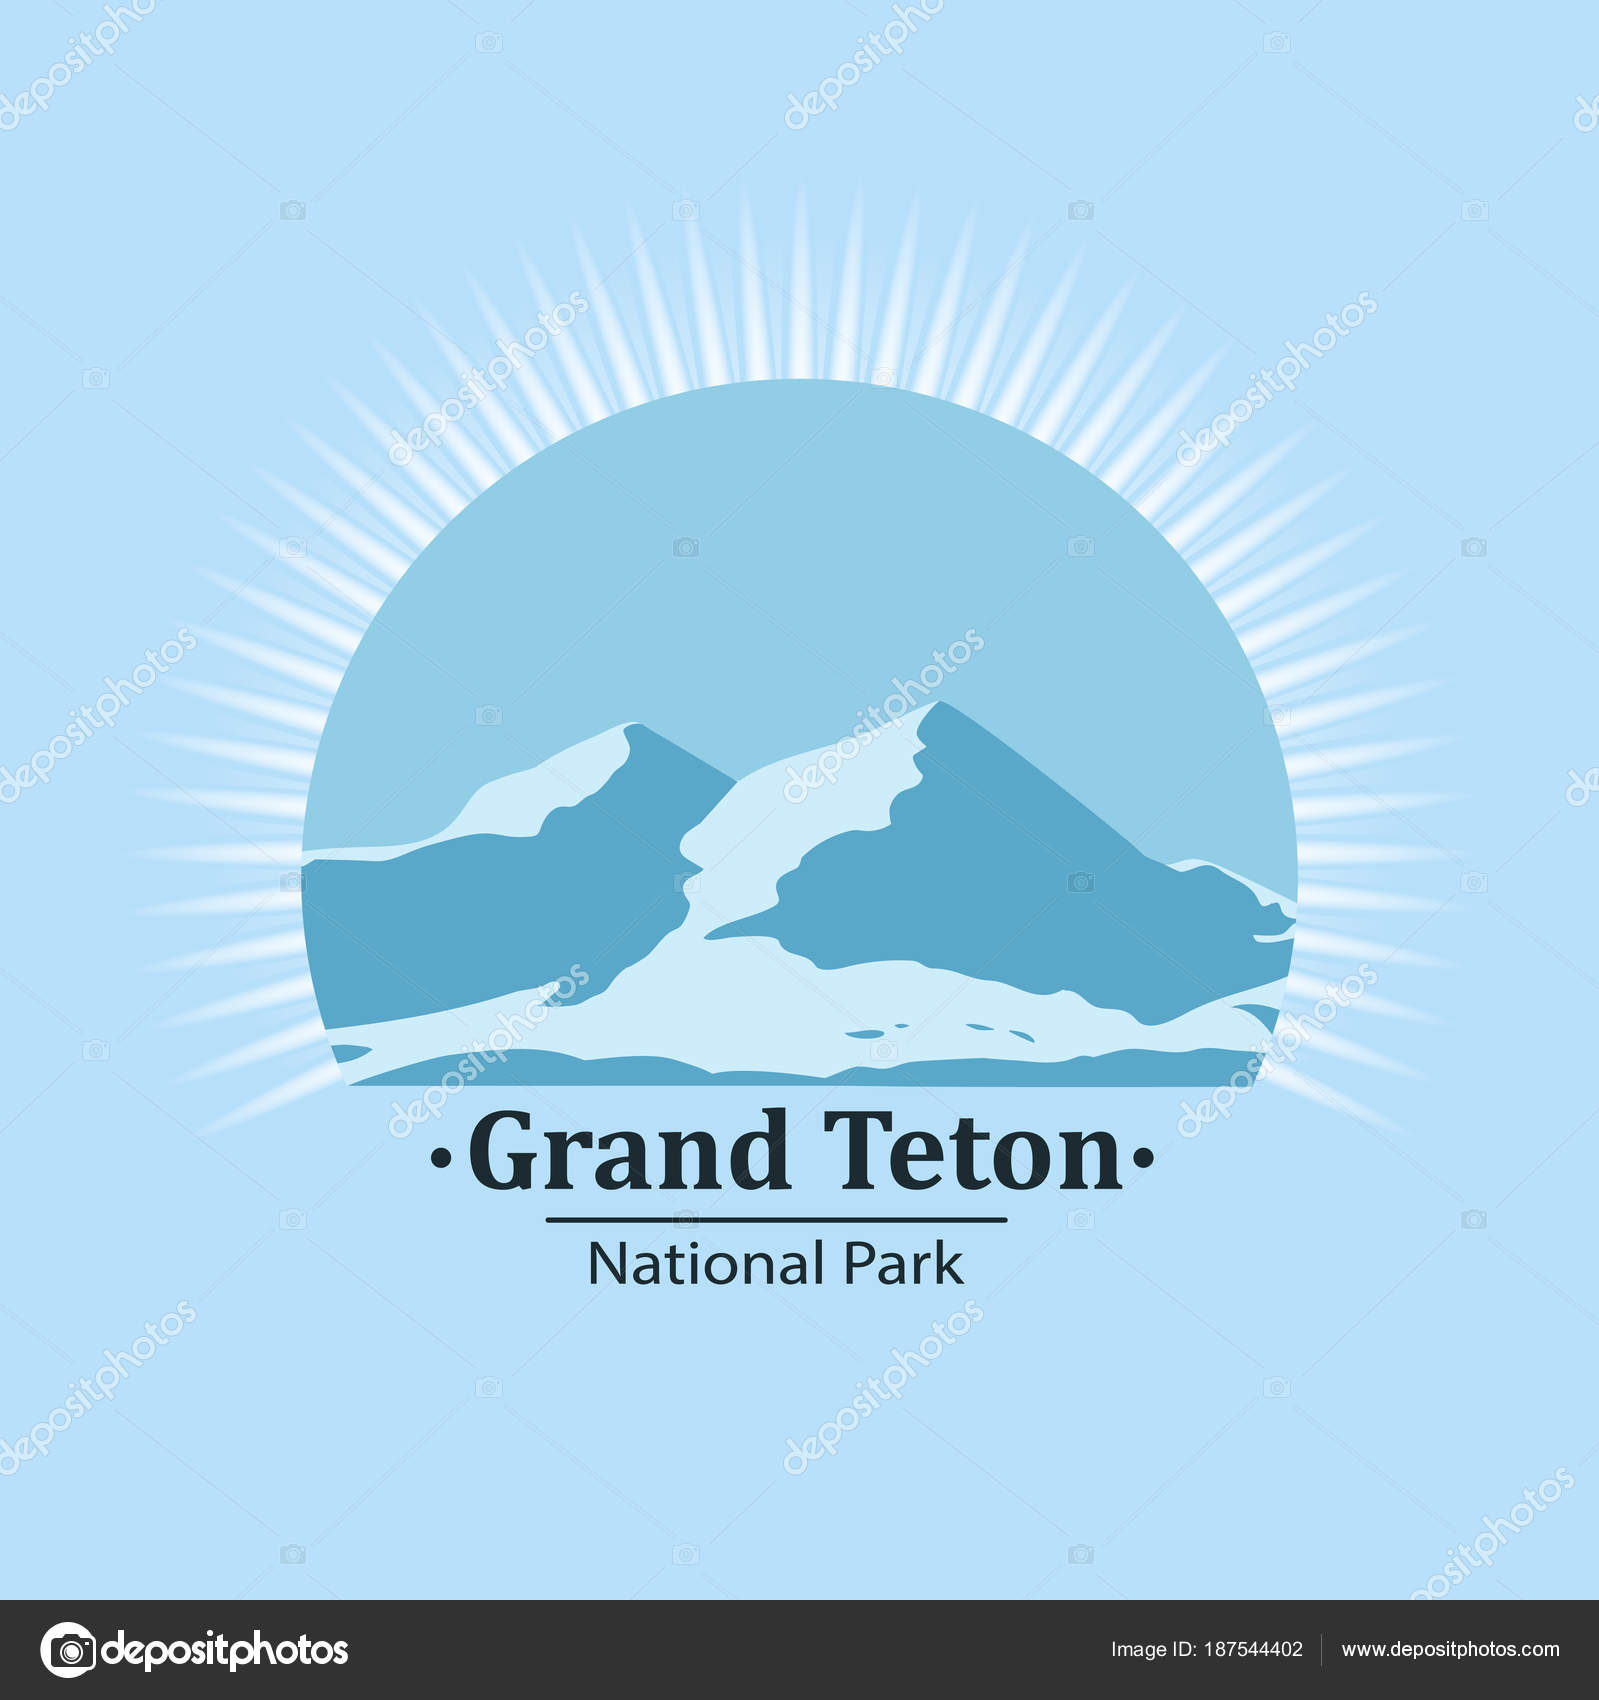 National Park Symbol Ctor Icon Stock Vector Matc 187544402